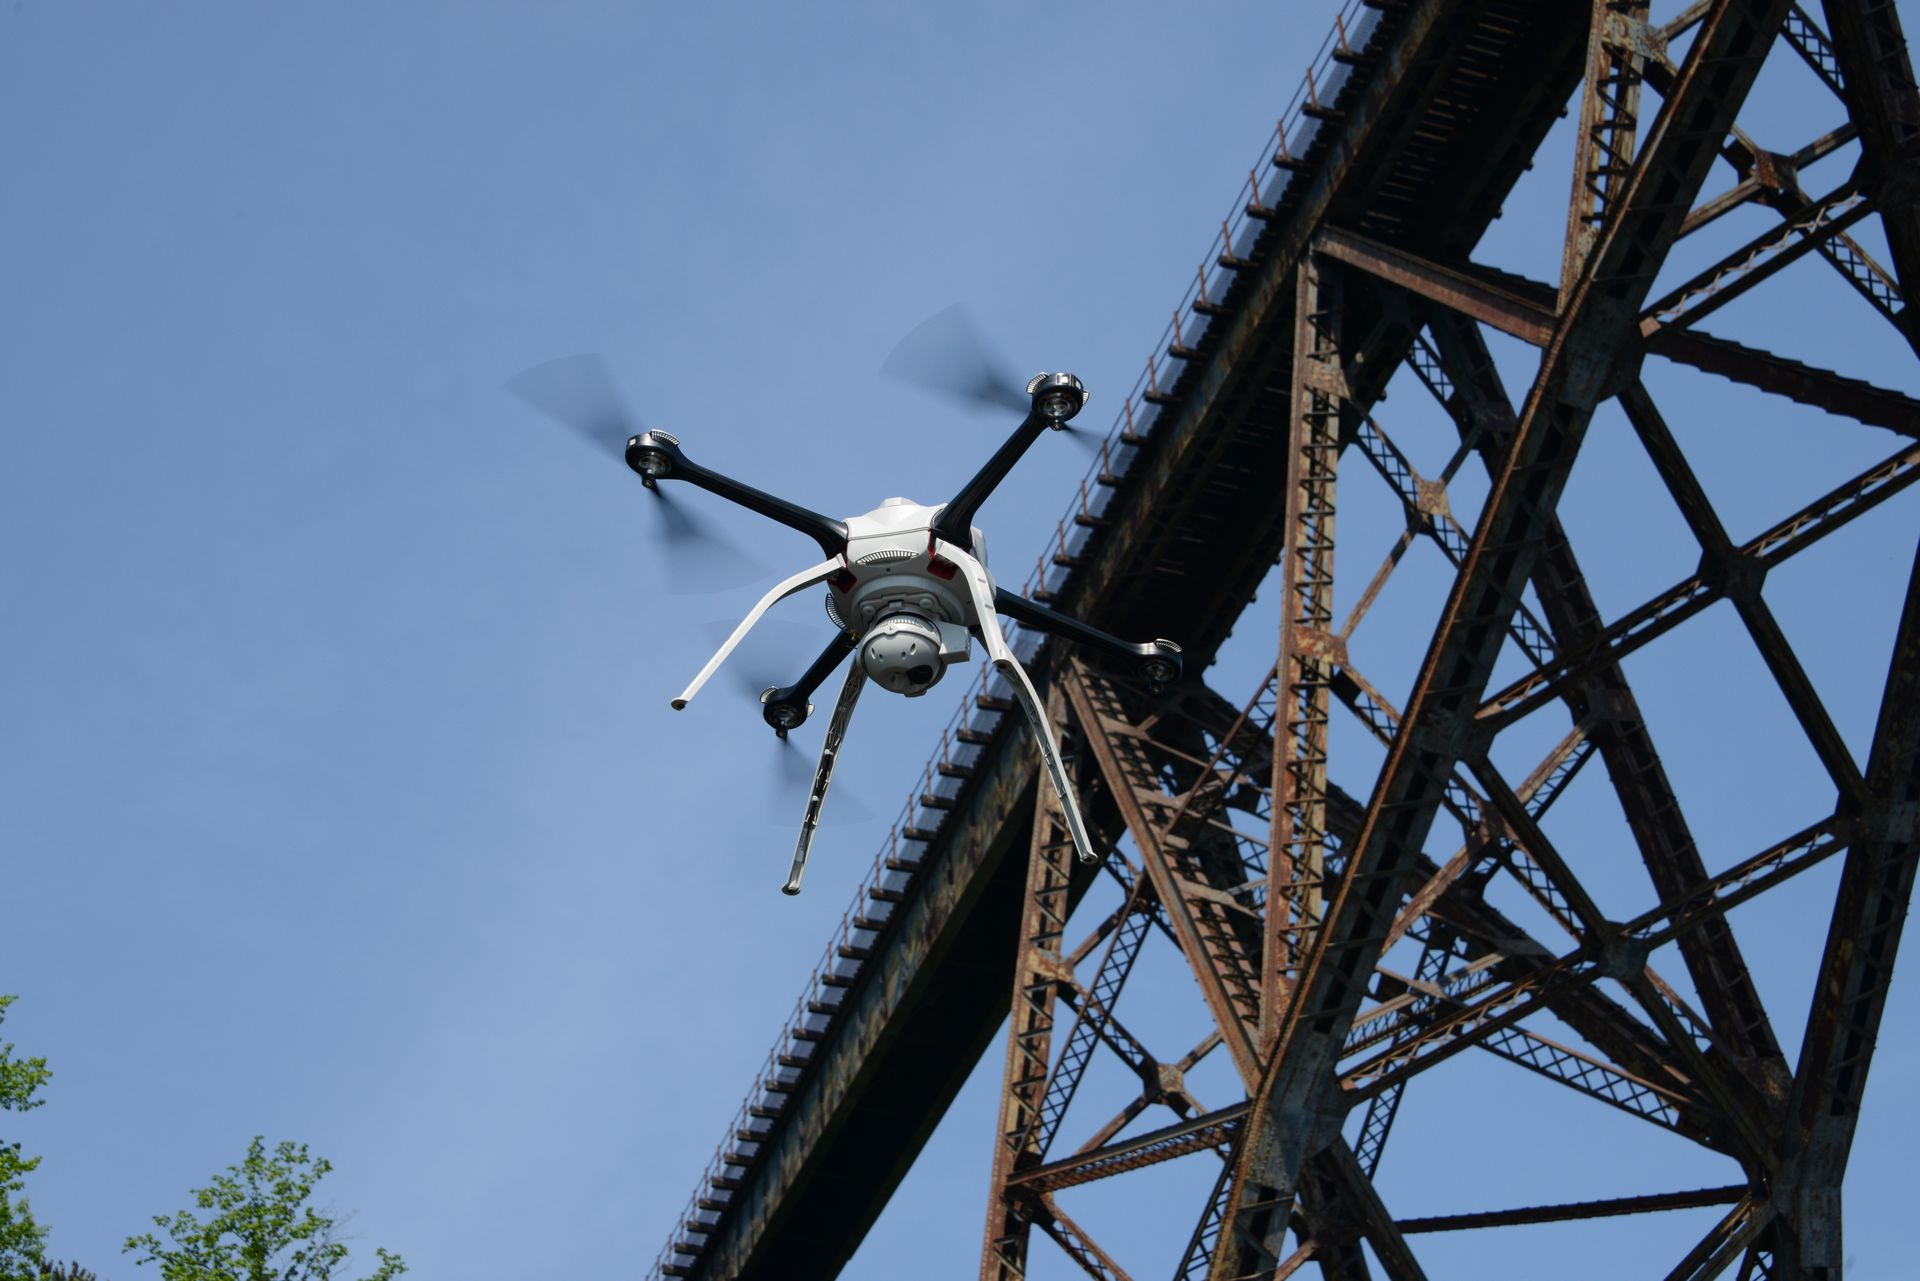 Aerial Photography, Inspection Top List of FAA-Approved Business